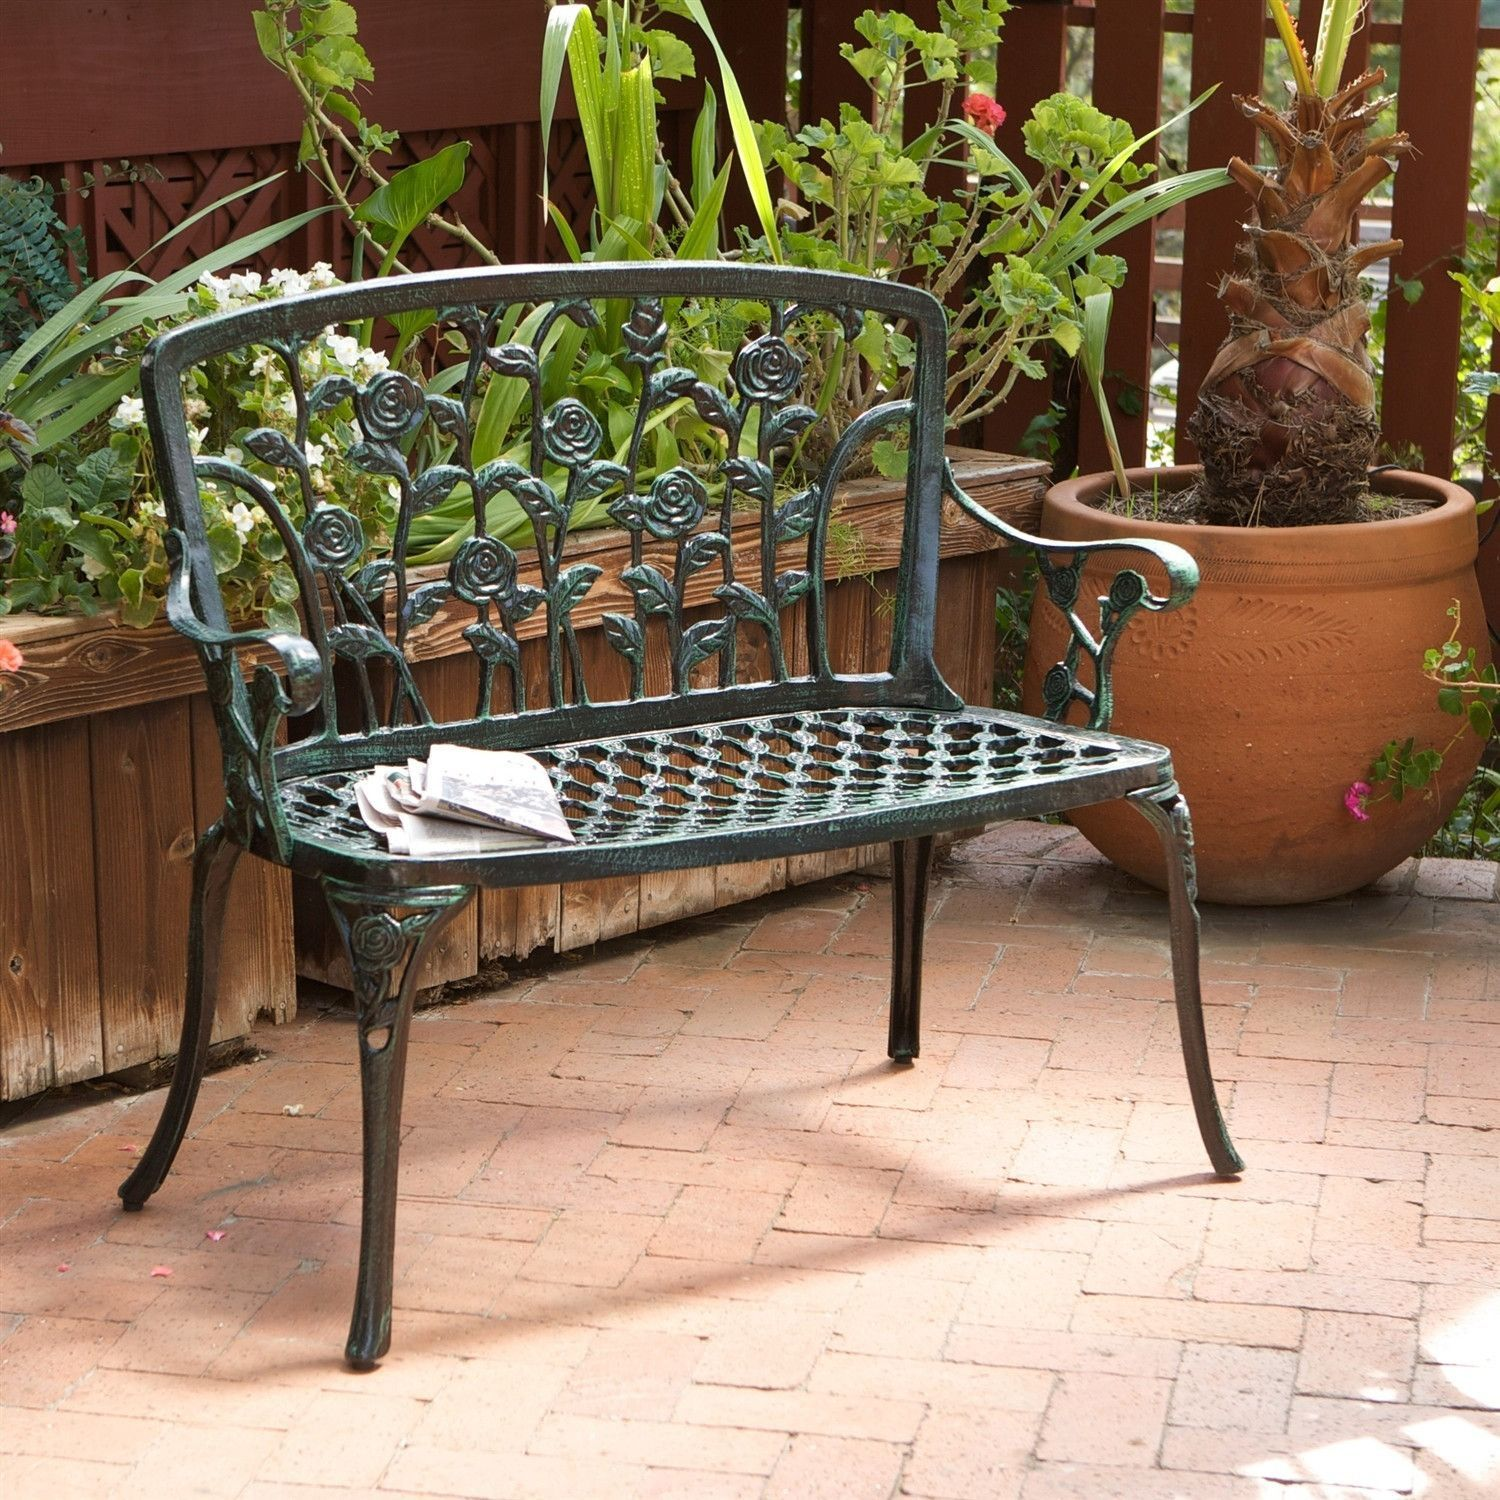 Fascinating Cast Aluminum Outdoor Rose Metal Garden Bench In Green Finish  With Inspiring Cast Aluminum Outdoor Rose Metal Garden Bench In Green Finish With Nice Garden Flowers List And Pictures Also Langton Garden Centre In Addition Garden Design Pictures And Youtube Vegetable Gardening Videos As Well As Aluminium Garden Furniture Sets Additionally Garden With Bricks From Pinterestcom With   Inspiring Cast Aluminum Outdoor Rose Metal Garden Bench In Green Finish  With Nice Cast Aluminum Outdoor Rose Metal Garden Bench In Green Finish And Fascinating Garden Flowers List And Pictures Also Langton Garden Centre In Addition Garden Design Pictures From Pinterestcom